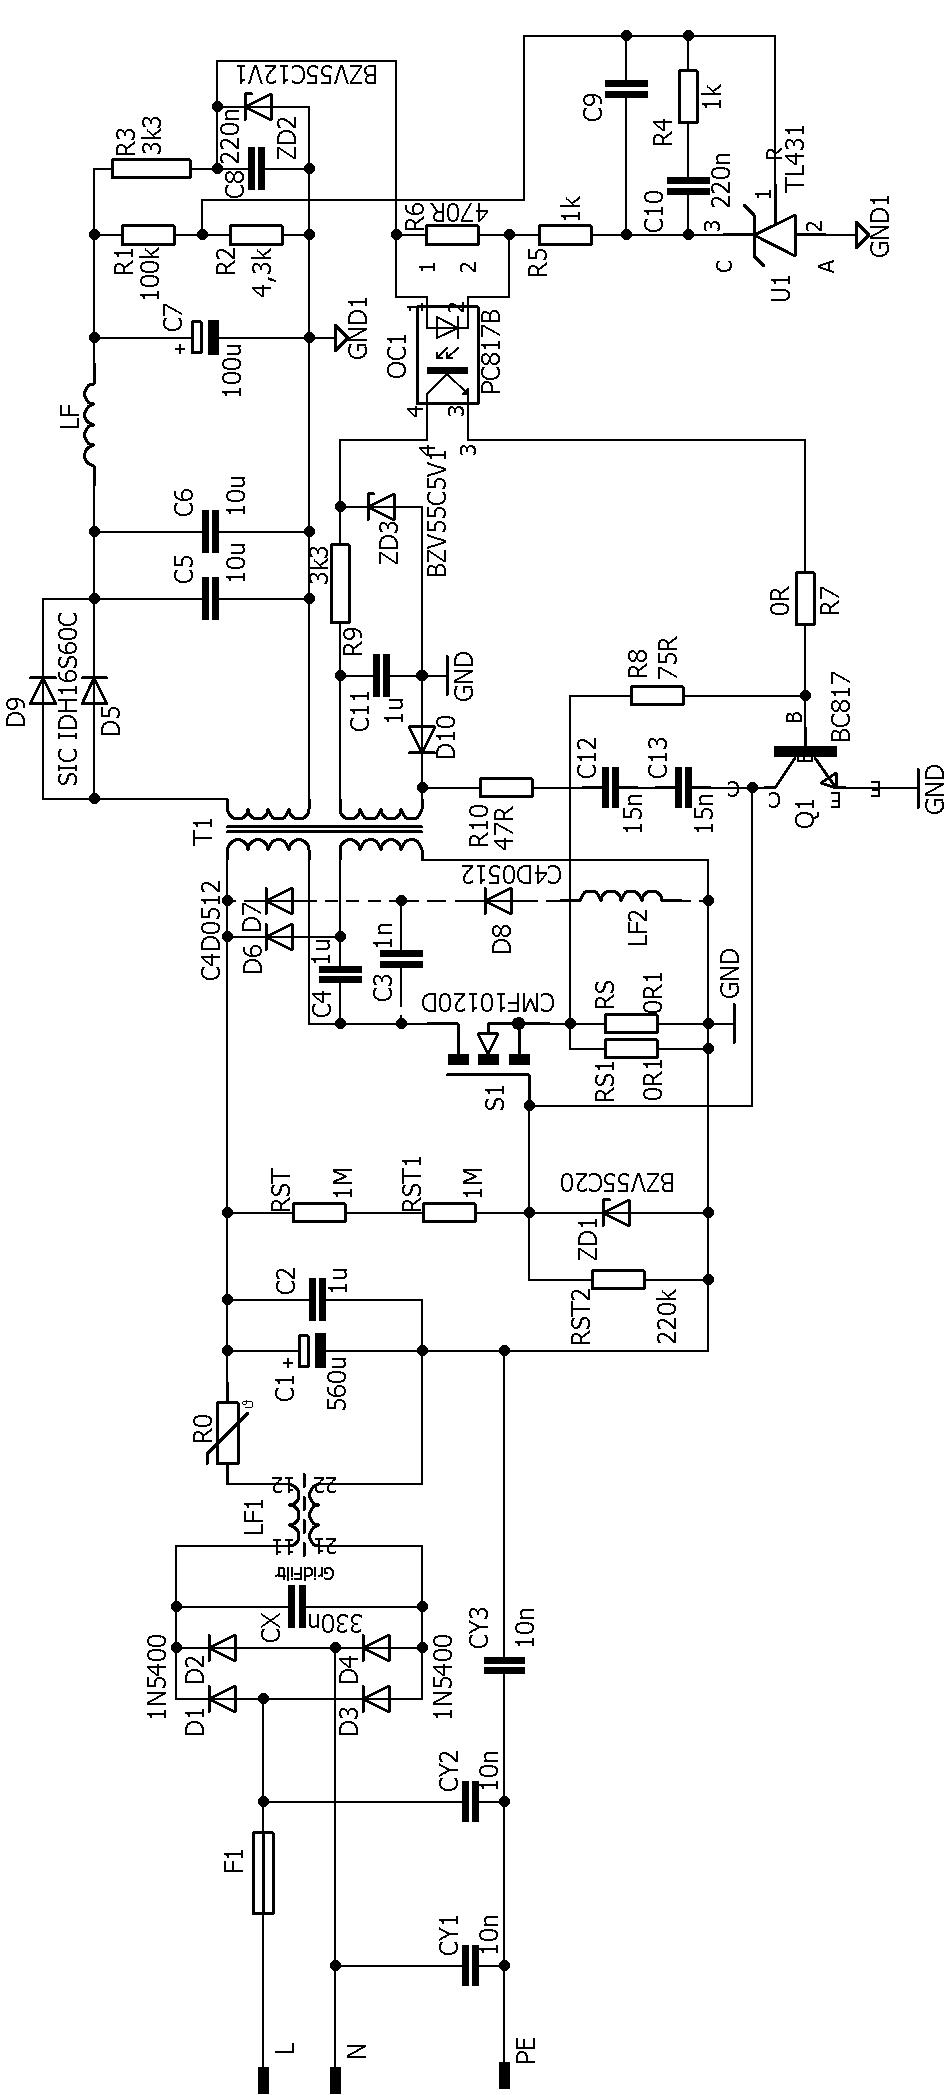 Self Oscillating Smps Circuit Flyback 600w 60v 120khz Schematic Of Simple 230v Led Driver 120x120